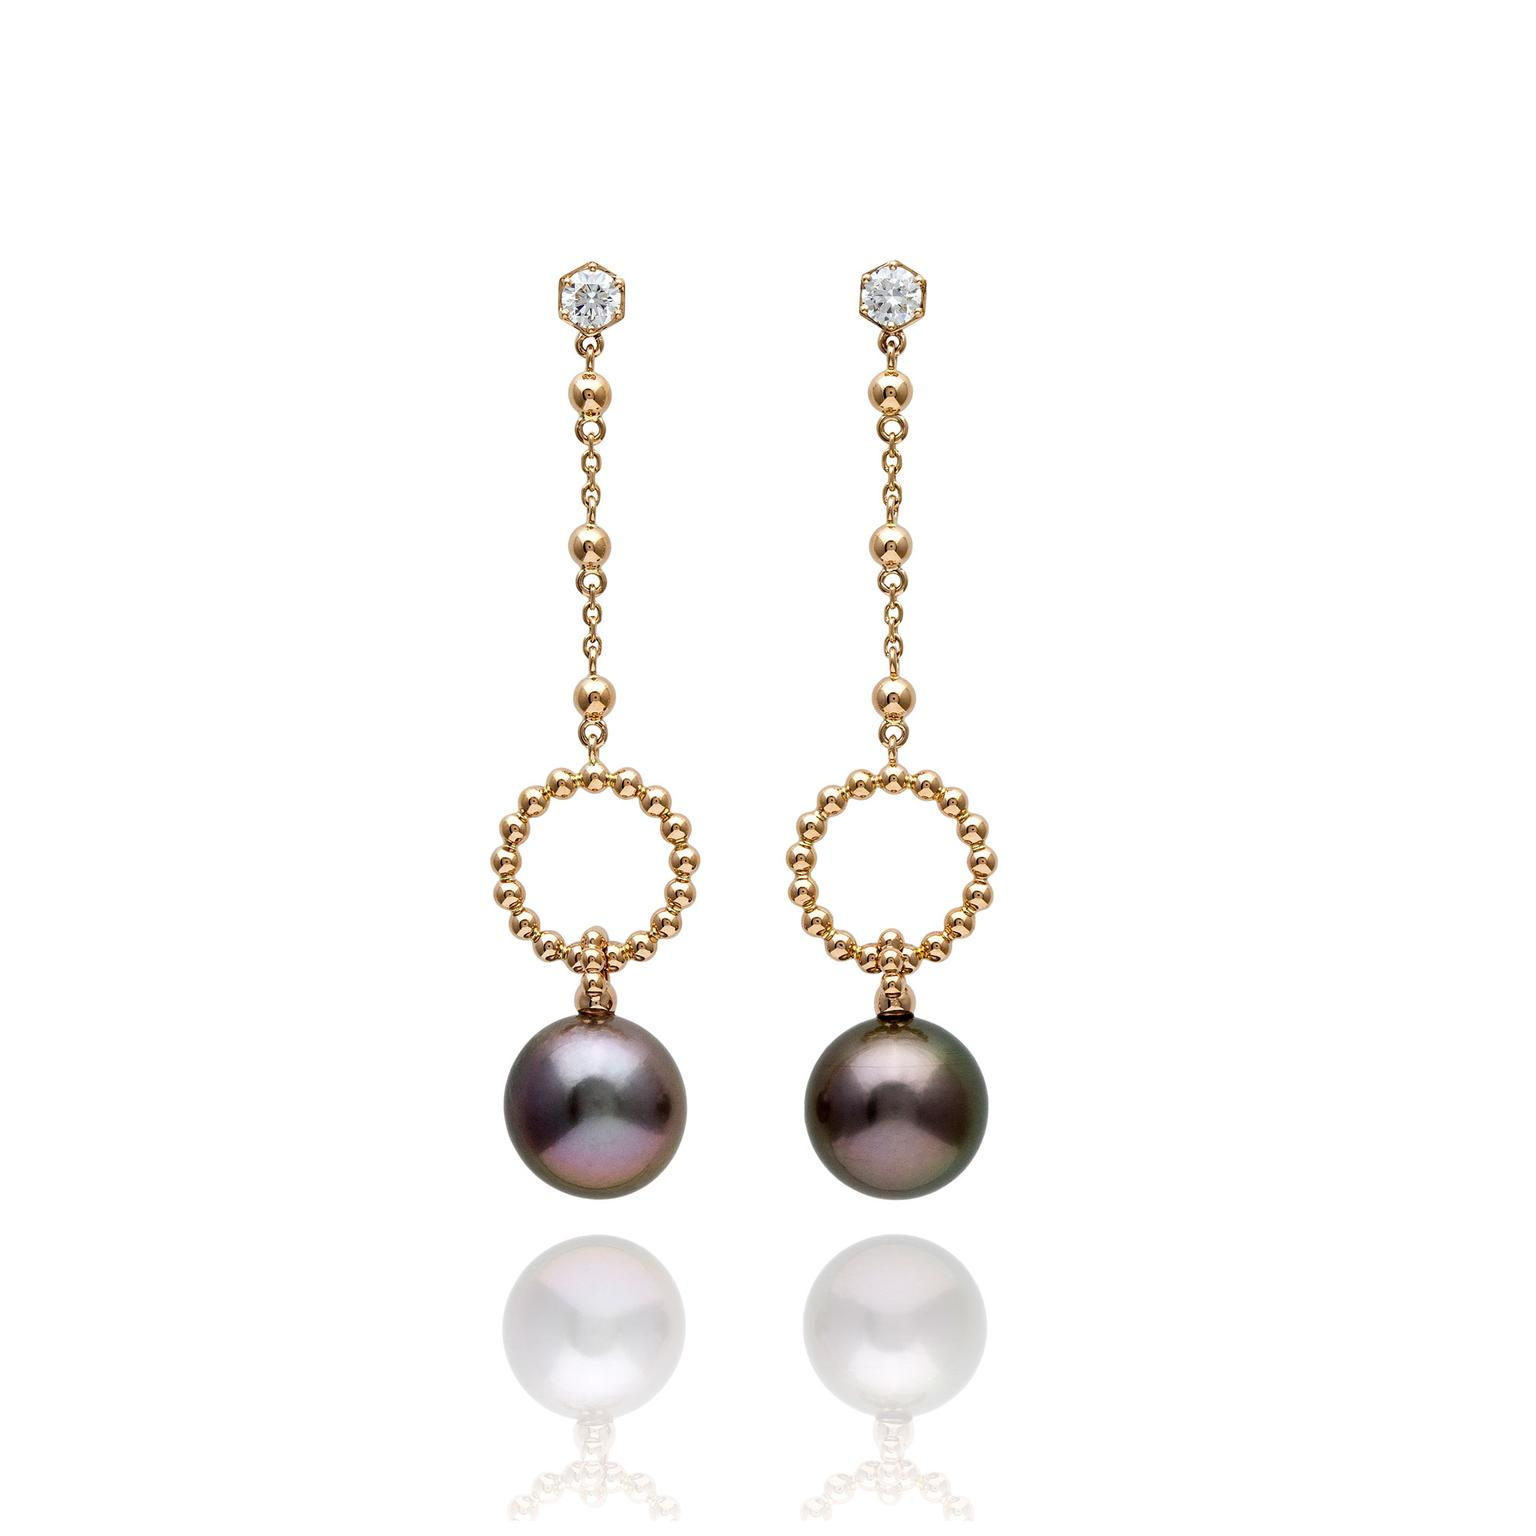 Boodles Tahitian pearl earrings